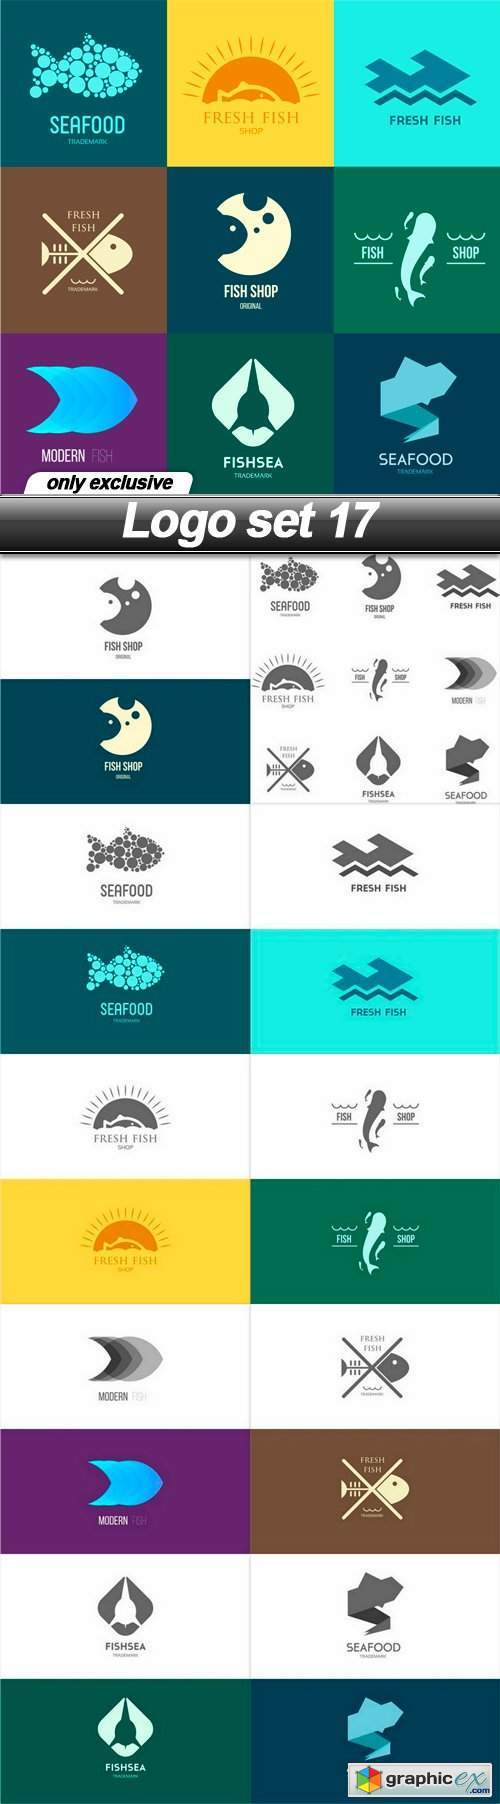 Logo set 18 - 11 EPS